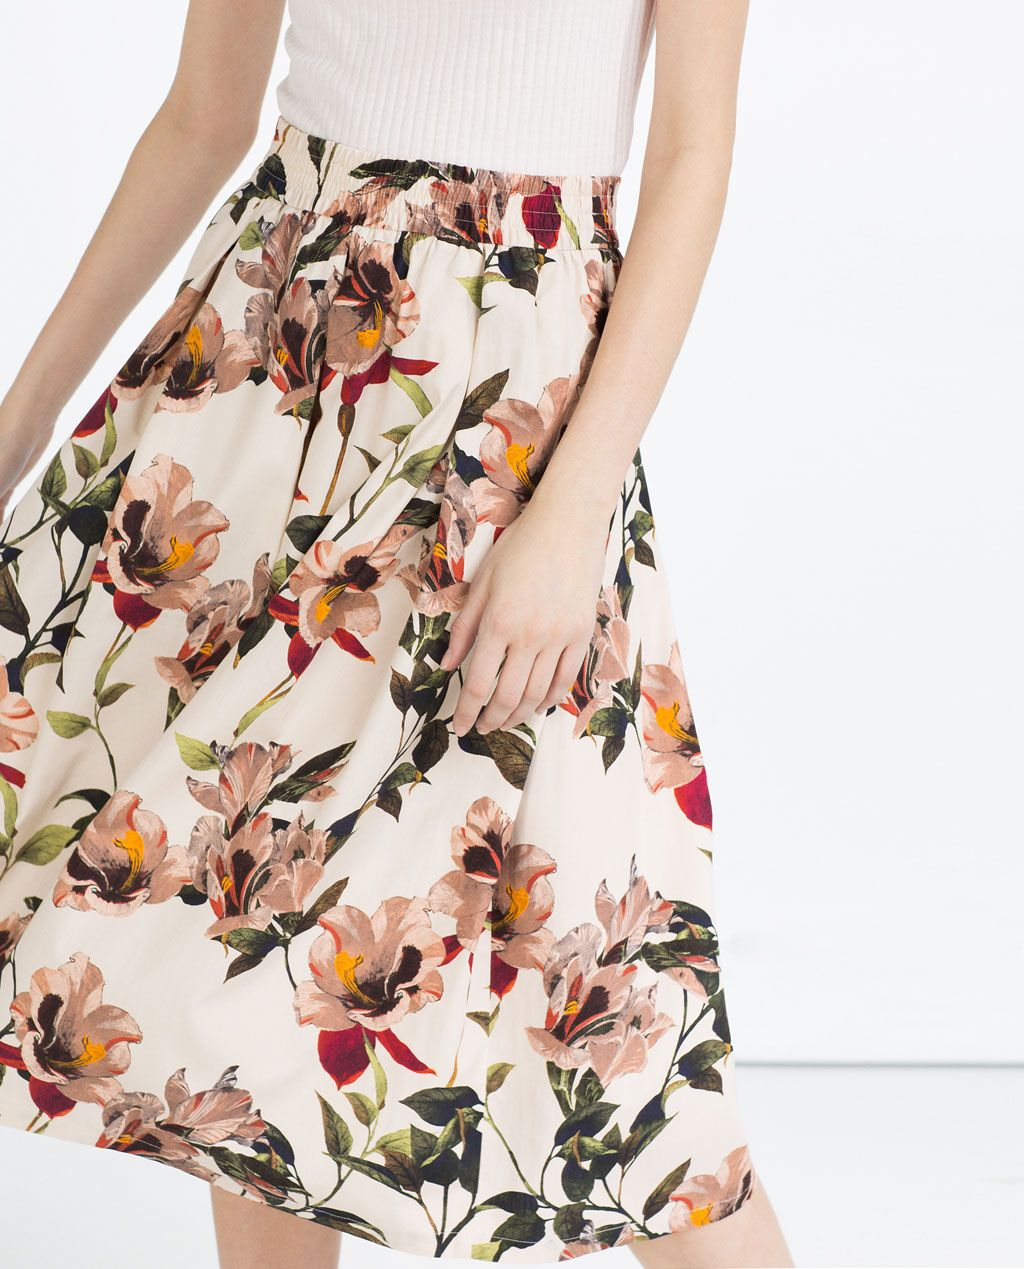 b38c0c4992 Image 3 of FLORAL PRINT MIDI SKIRT from Zara | MATERIAL HAPPINESS ...